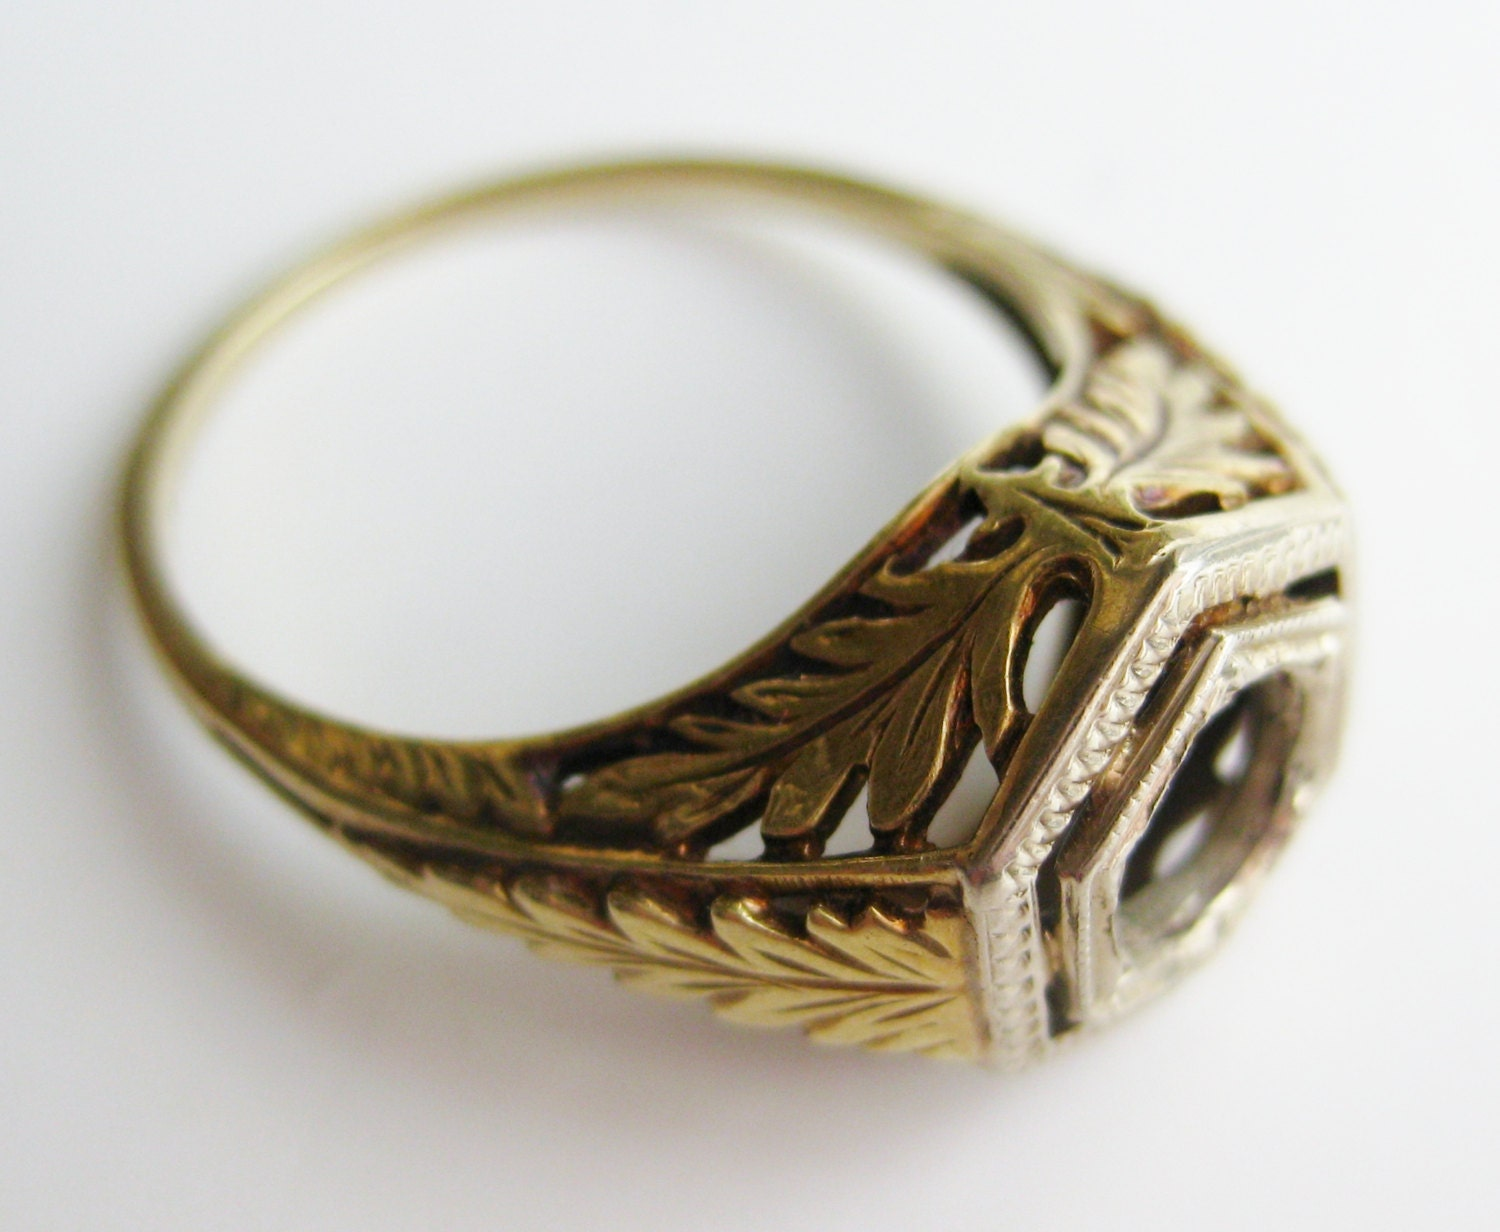 Vintage Wedding Ring Art Deco 14k Gold Filigree Engagement